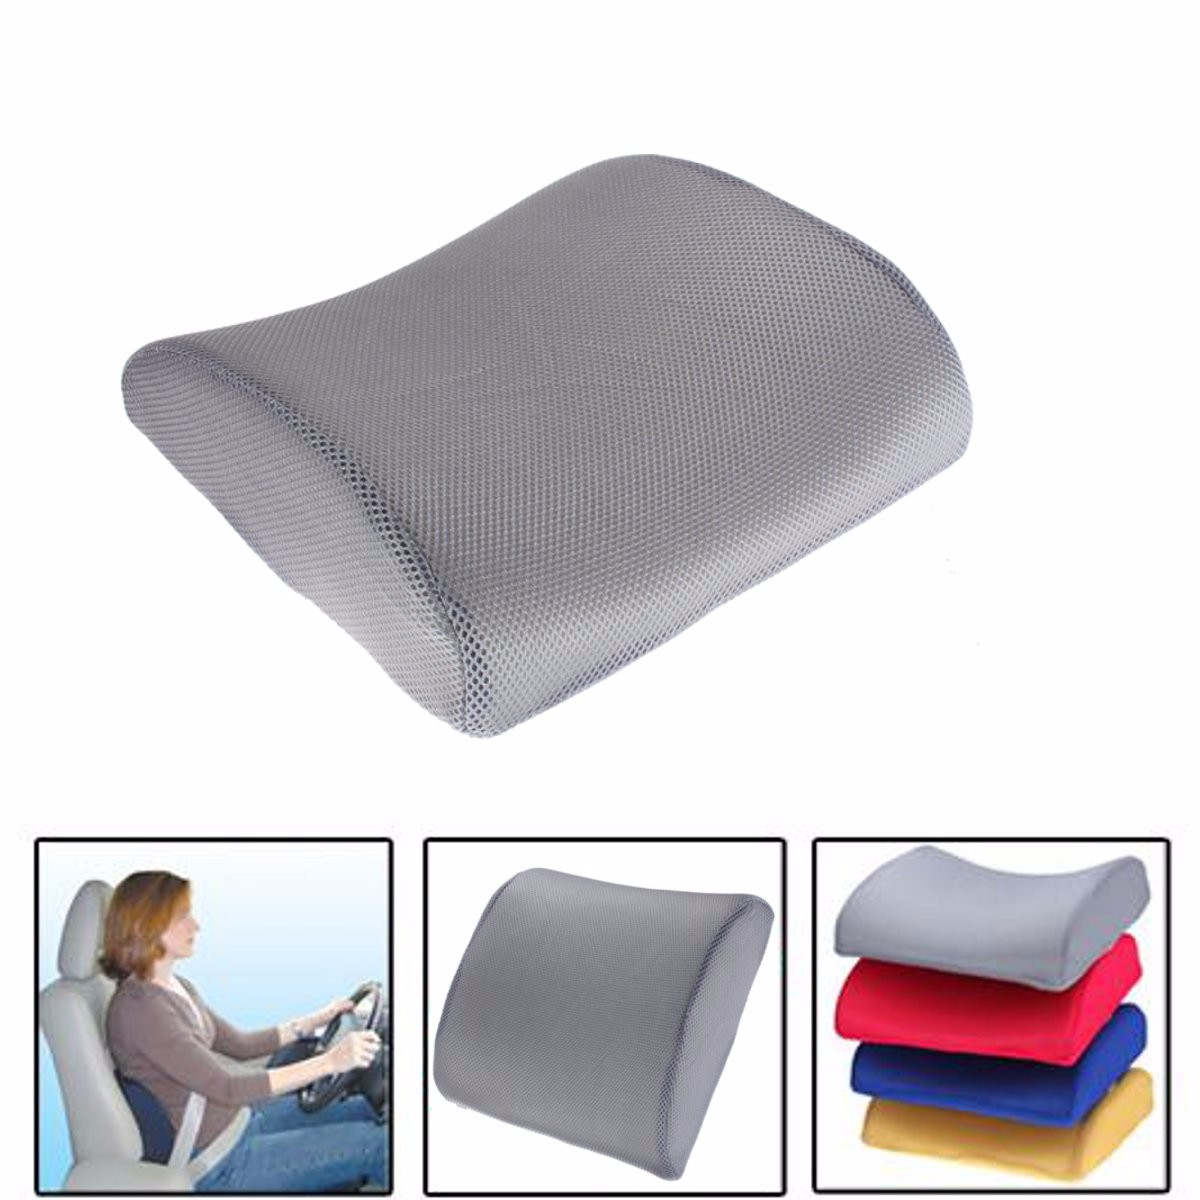 Memory foam lumbar back support cushion pillow for office home car seat chair grey lazada - Best back pillow for office chair ...